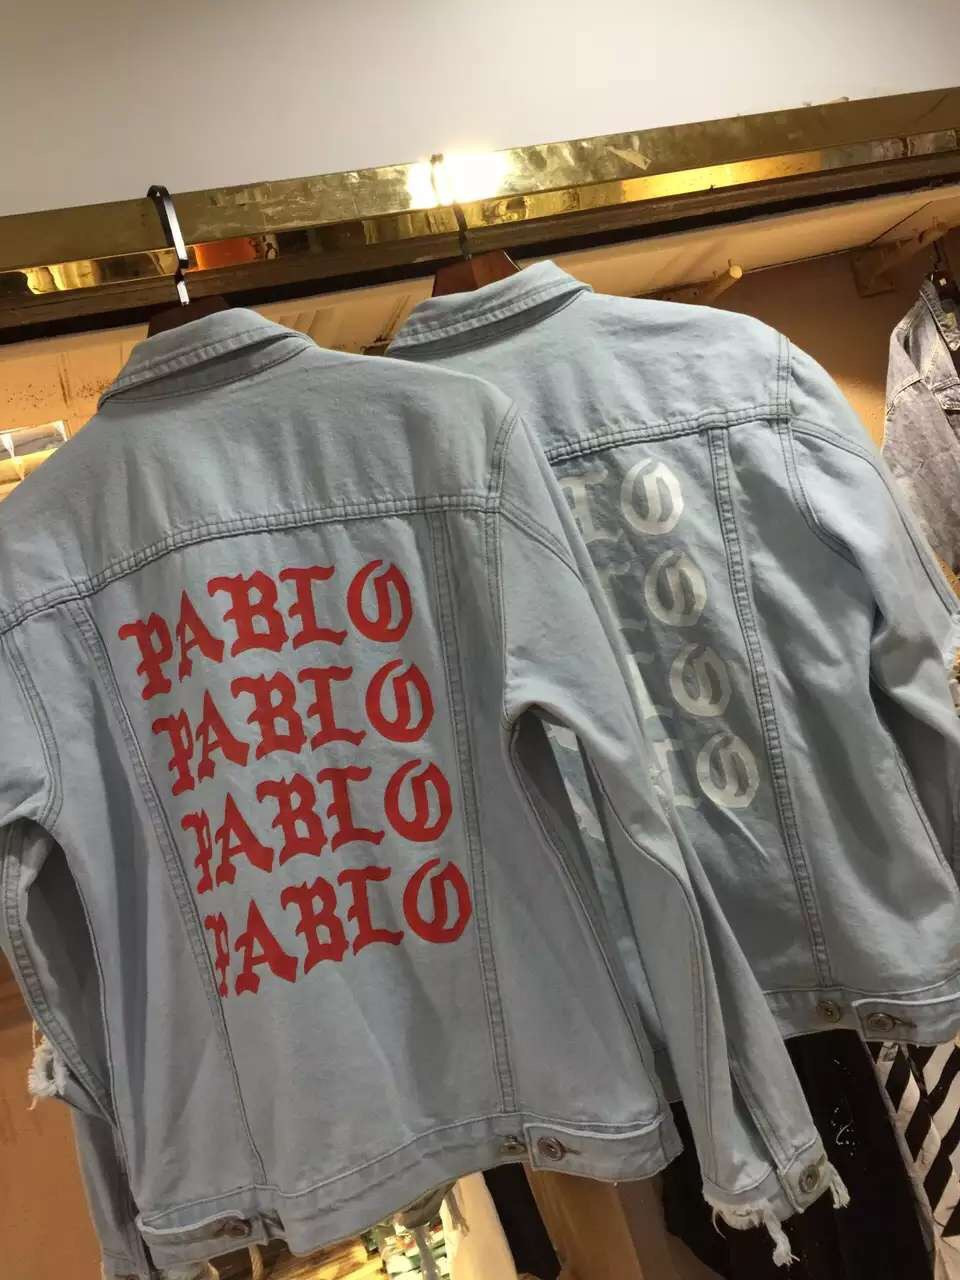 HTB1On1RNXXXXXbgapXXq6xXFXXXs - I Feel Like Pablo Denim Jacket Season 3 Kanye West Pablo Jeans Jacket PTC 03